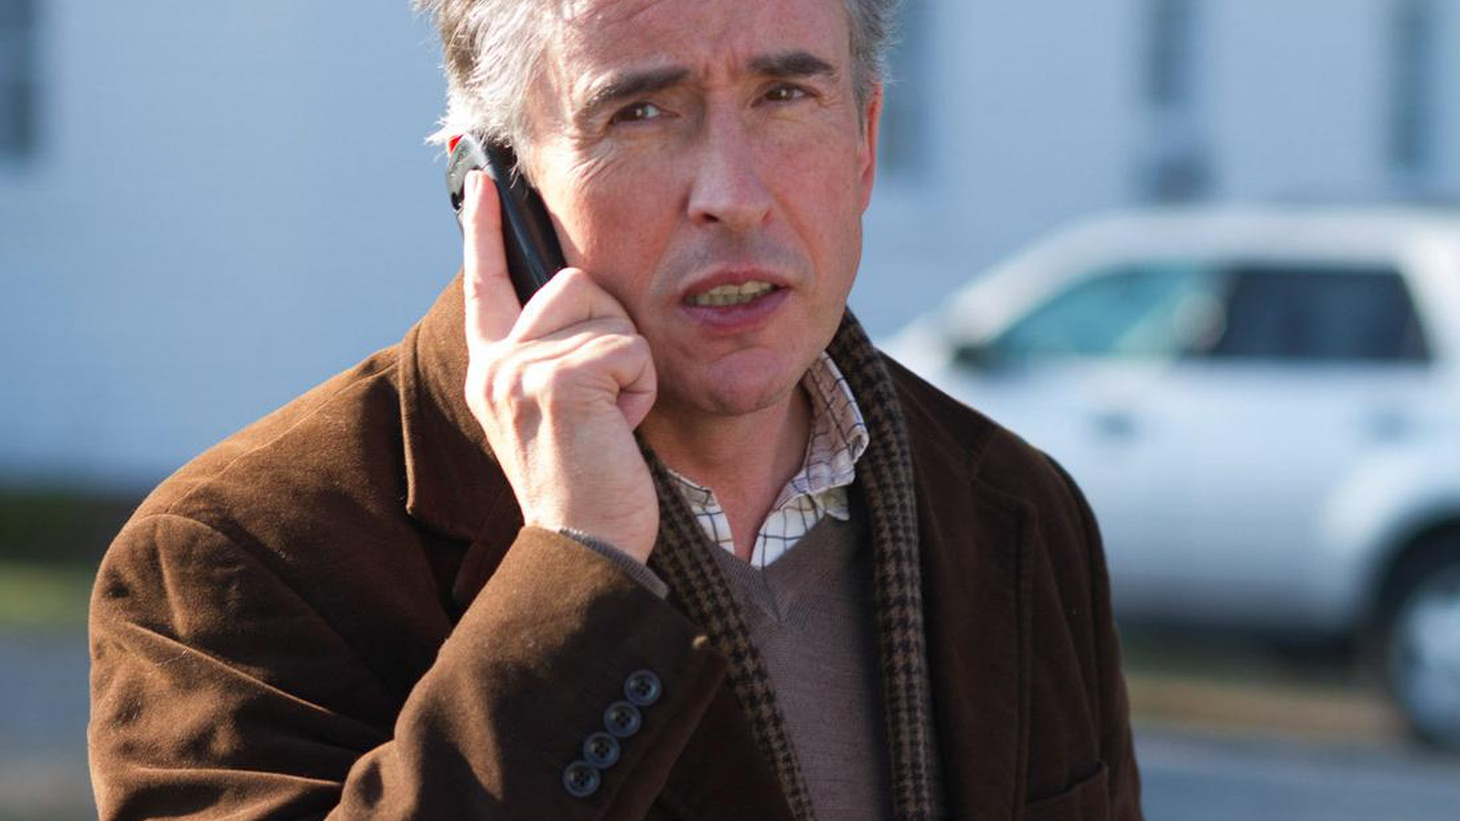 """Steve Coogan talks about his movie, """"Philomena,"""" being tabloid fodder and being typecast."""